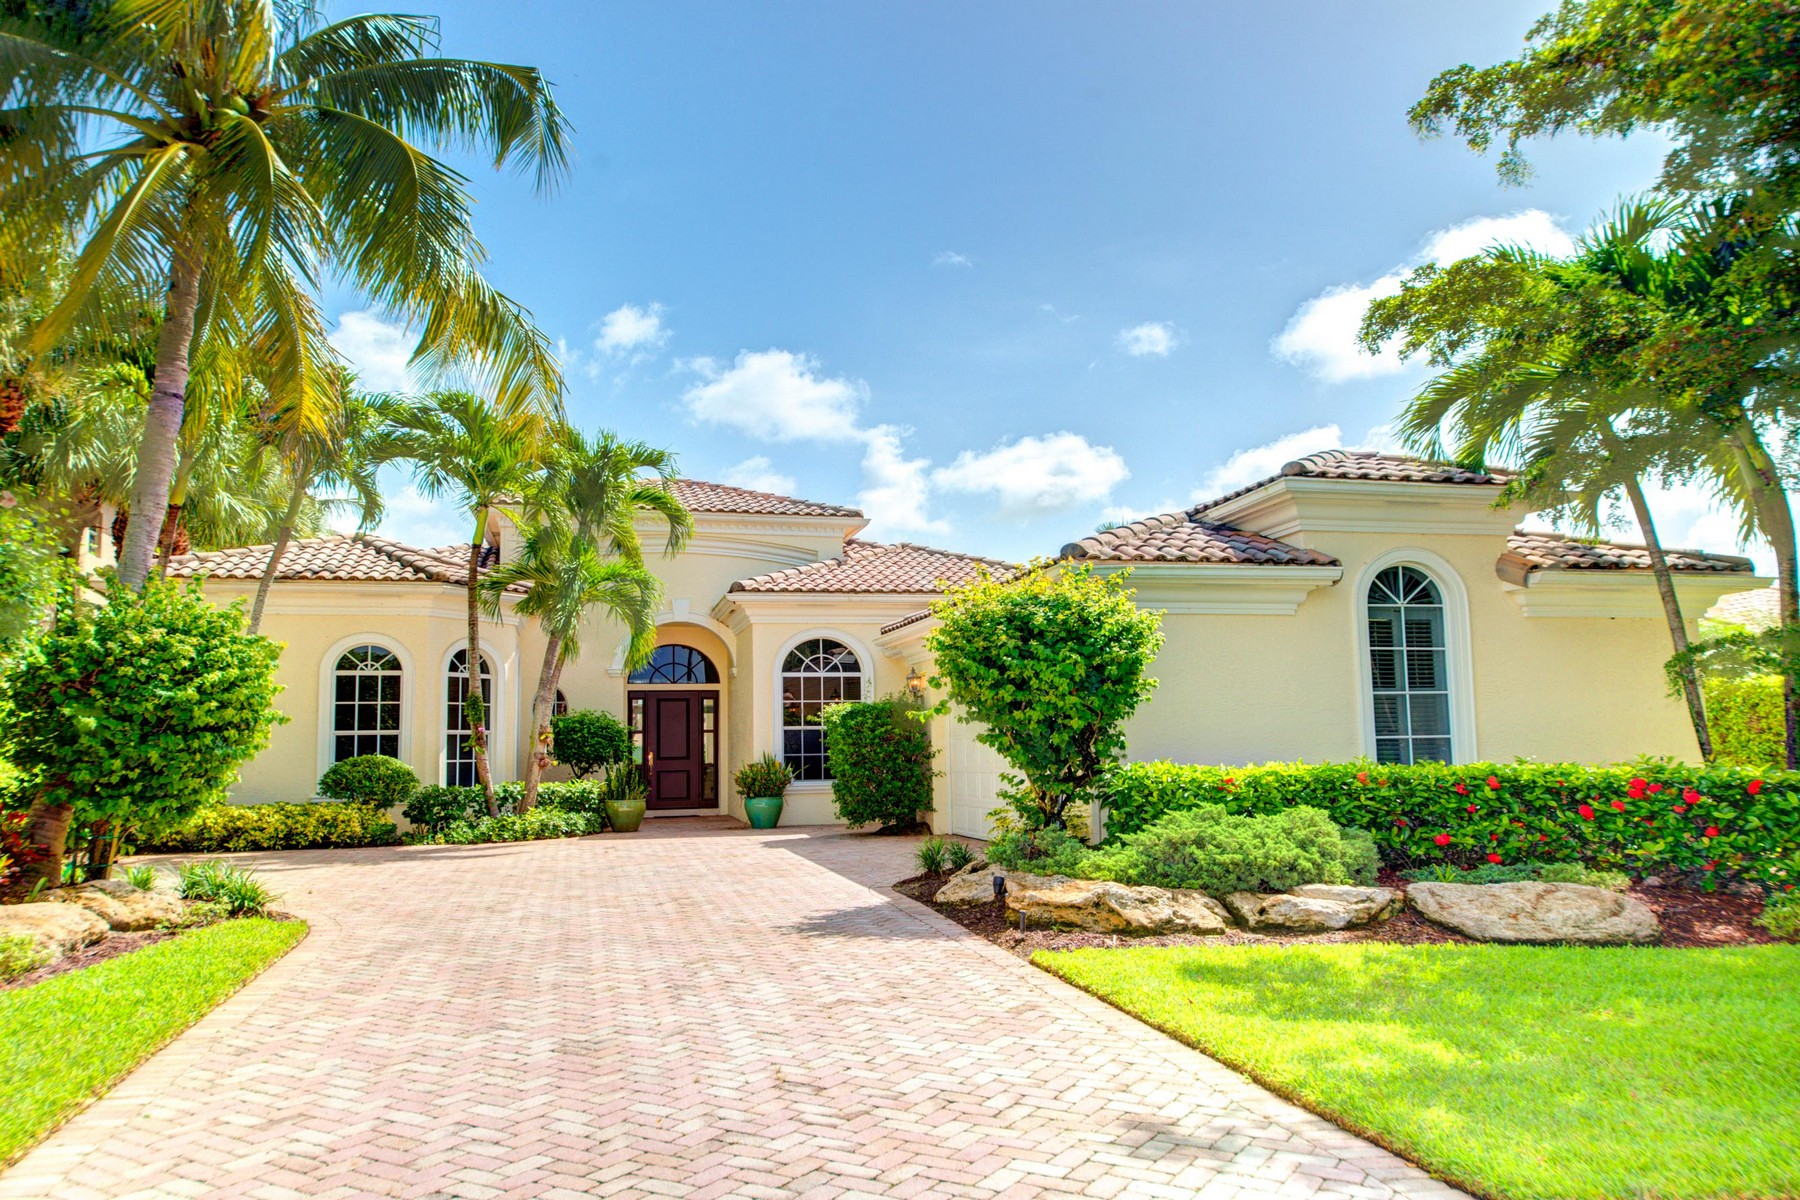 Single Family Home for Sale at 2940 Bent Cypress Road Wellington, Florida, 33414 United States